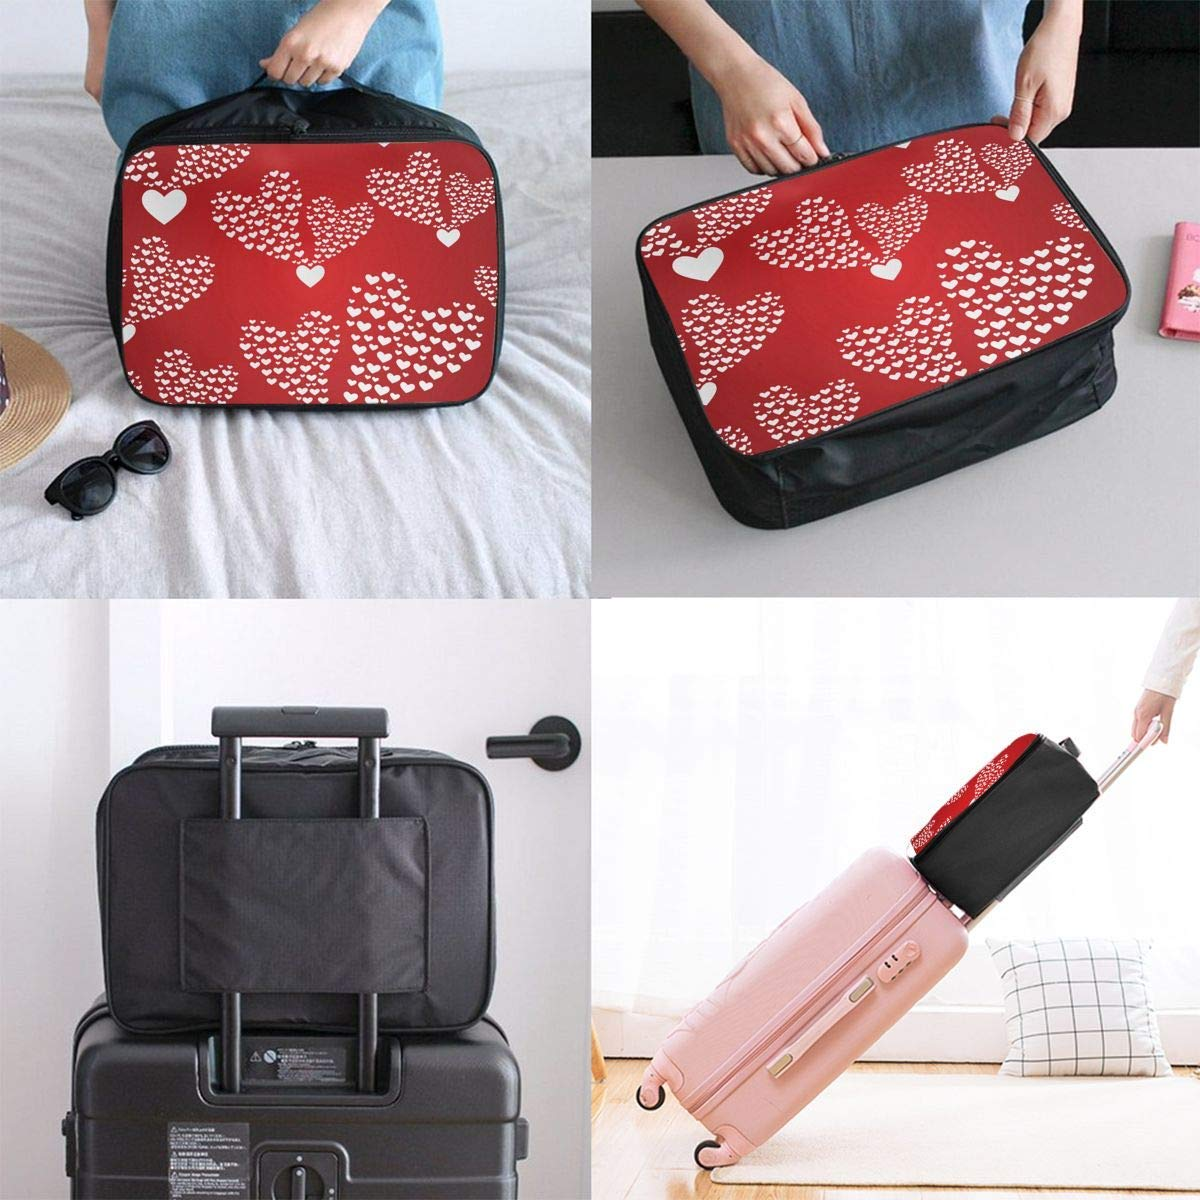 Love Heart Patterns Travel Lightweight Waterproof Foldable Storage Carry Luggage Duffle Tote Bag JTRVW Luggage Bags for Travel